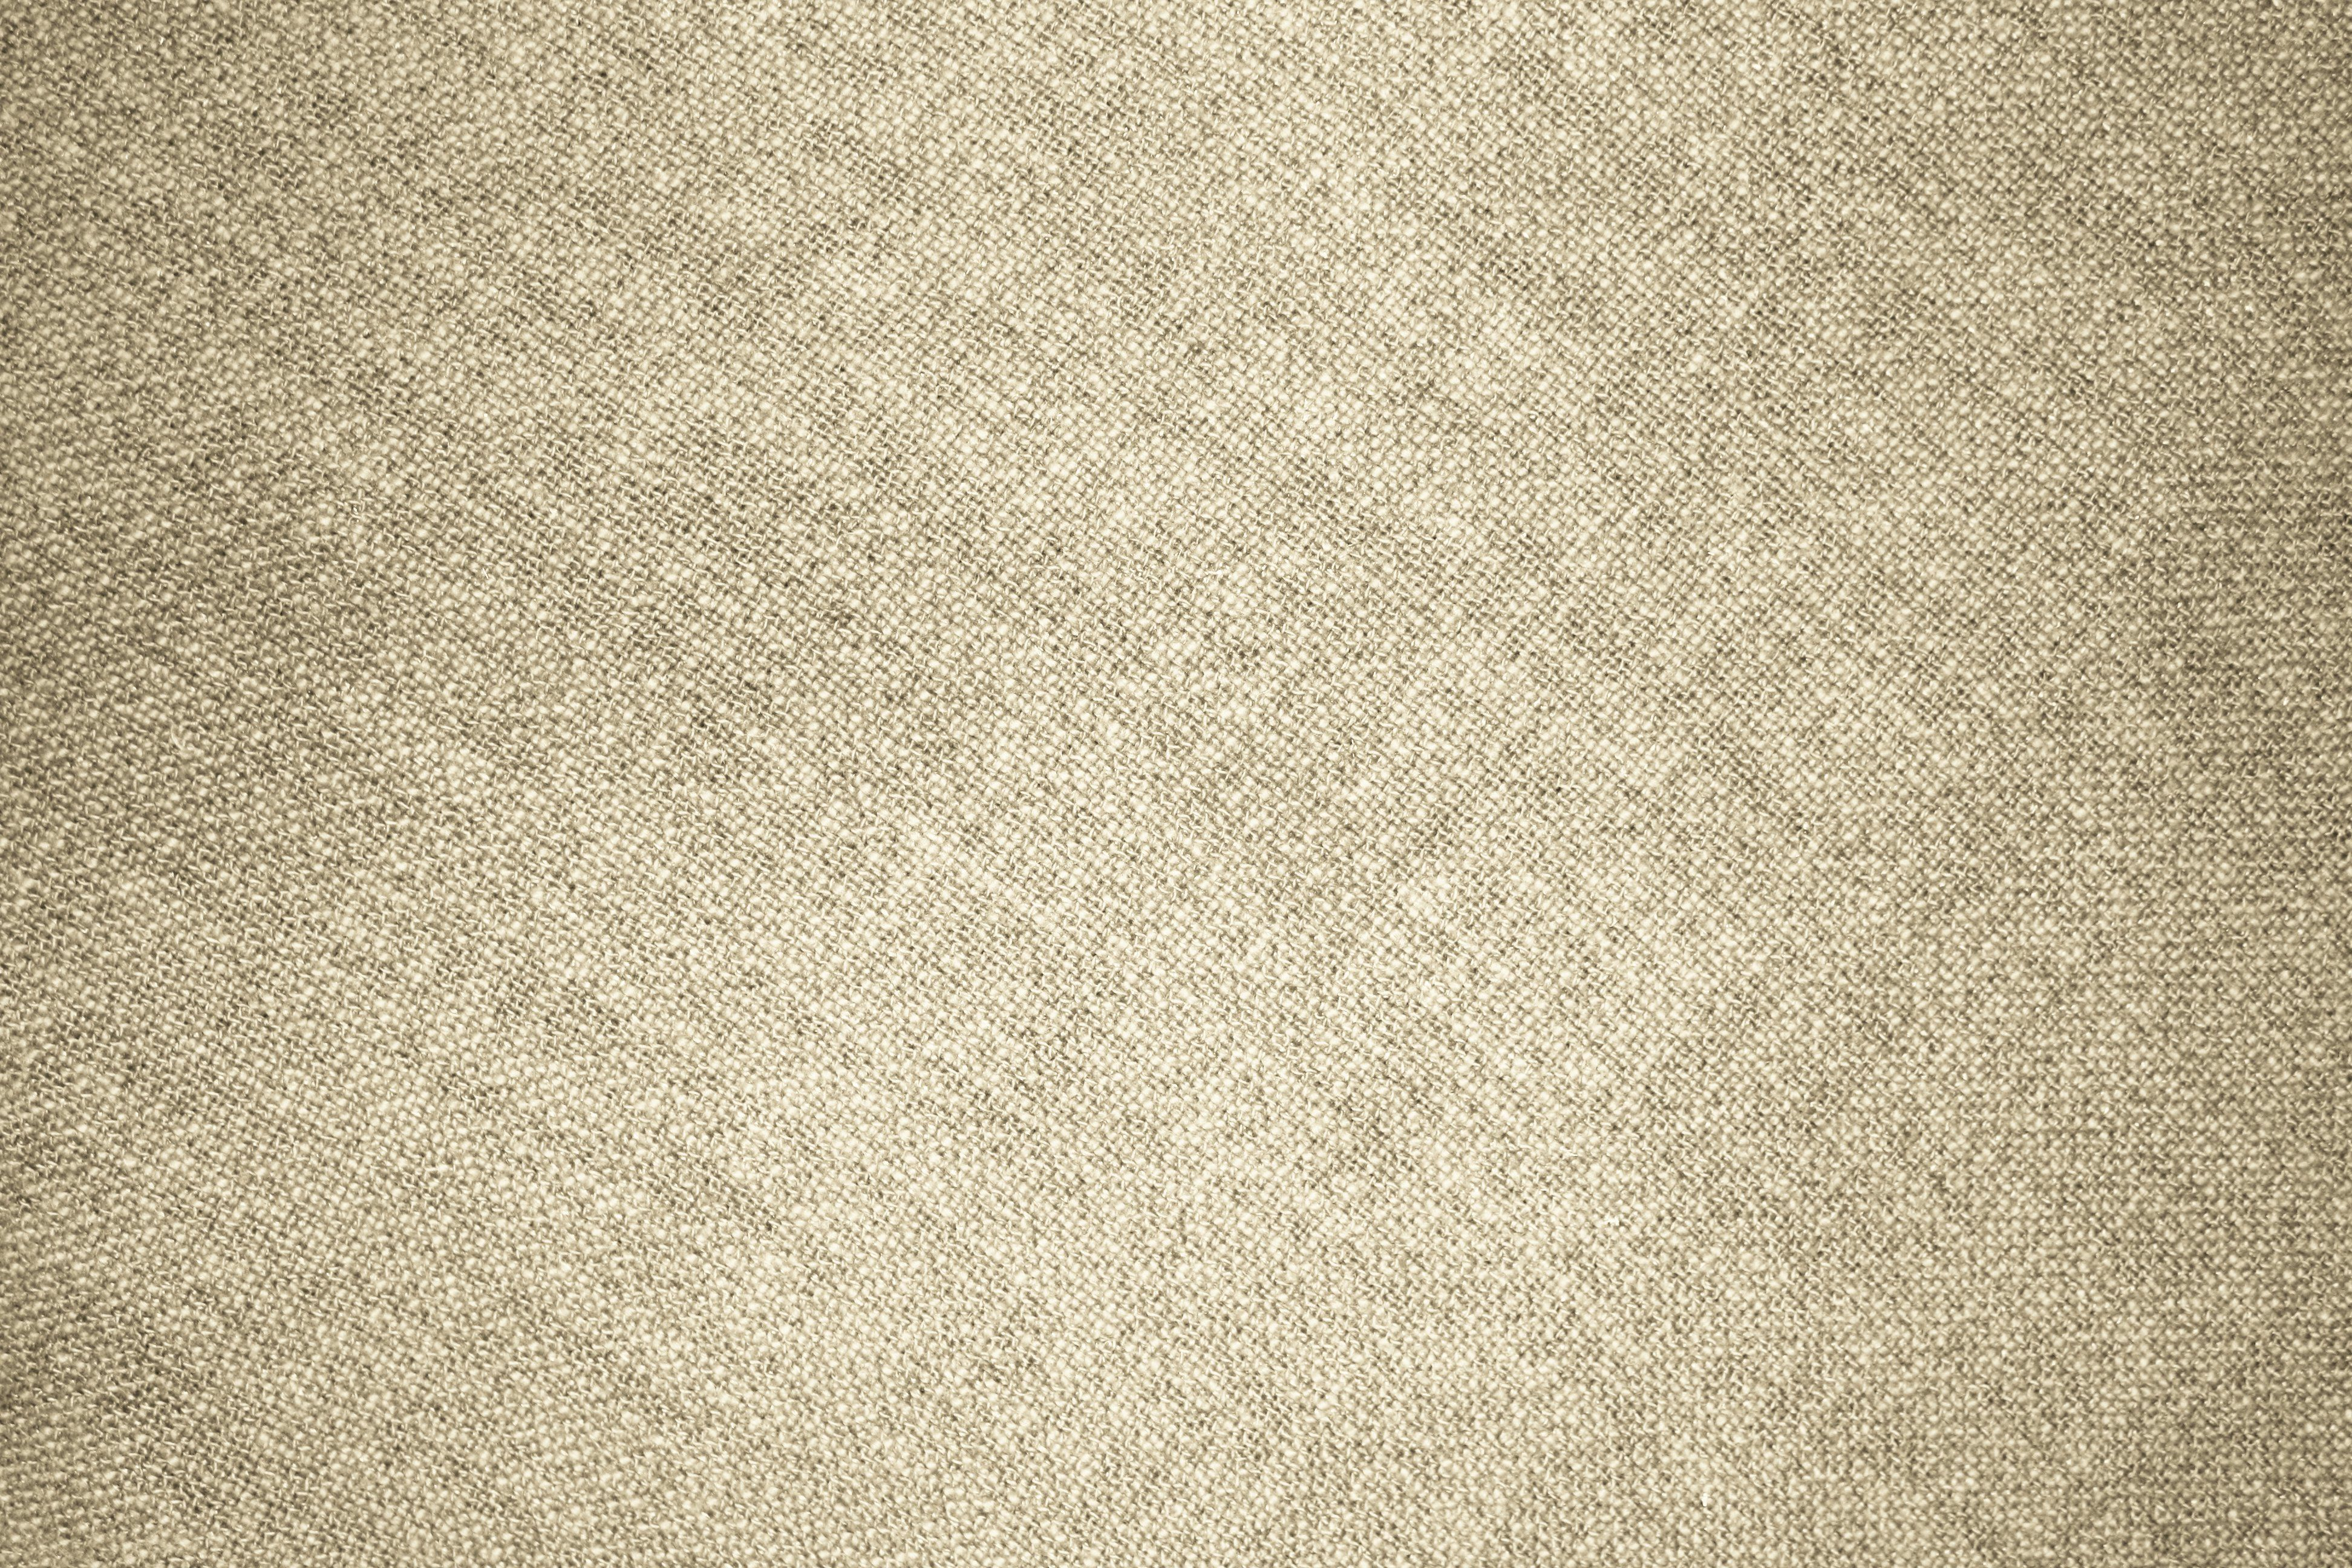 Paper or fabric beige texture Vector Image of Backgrounds Textures